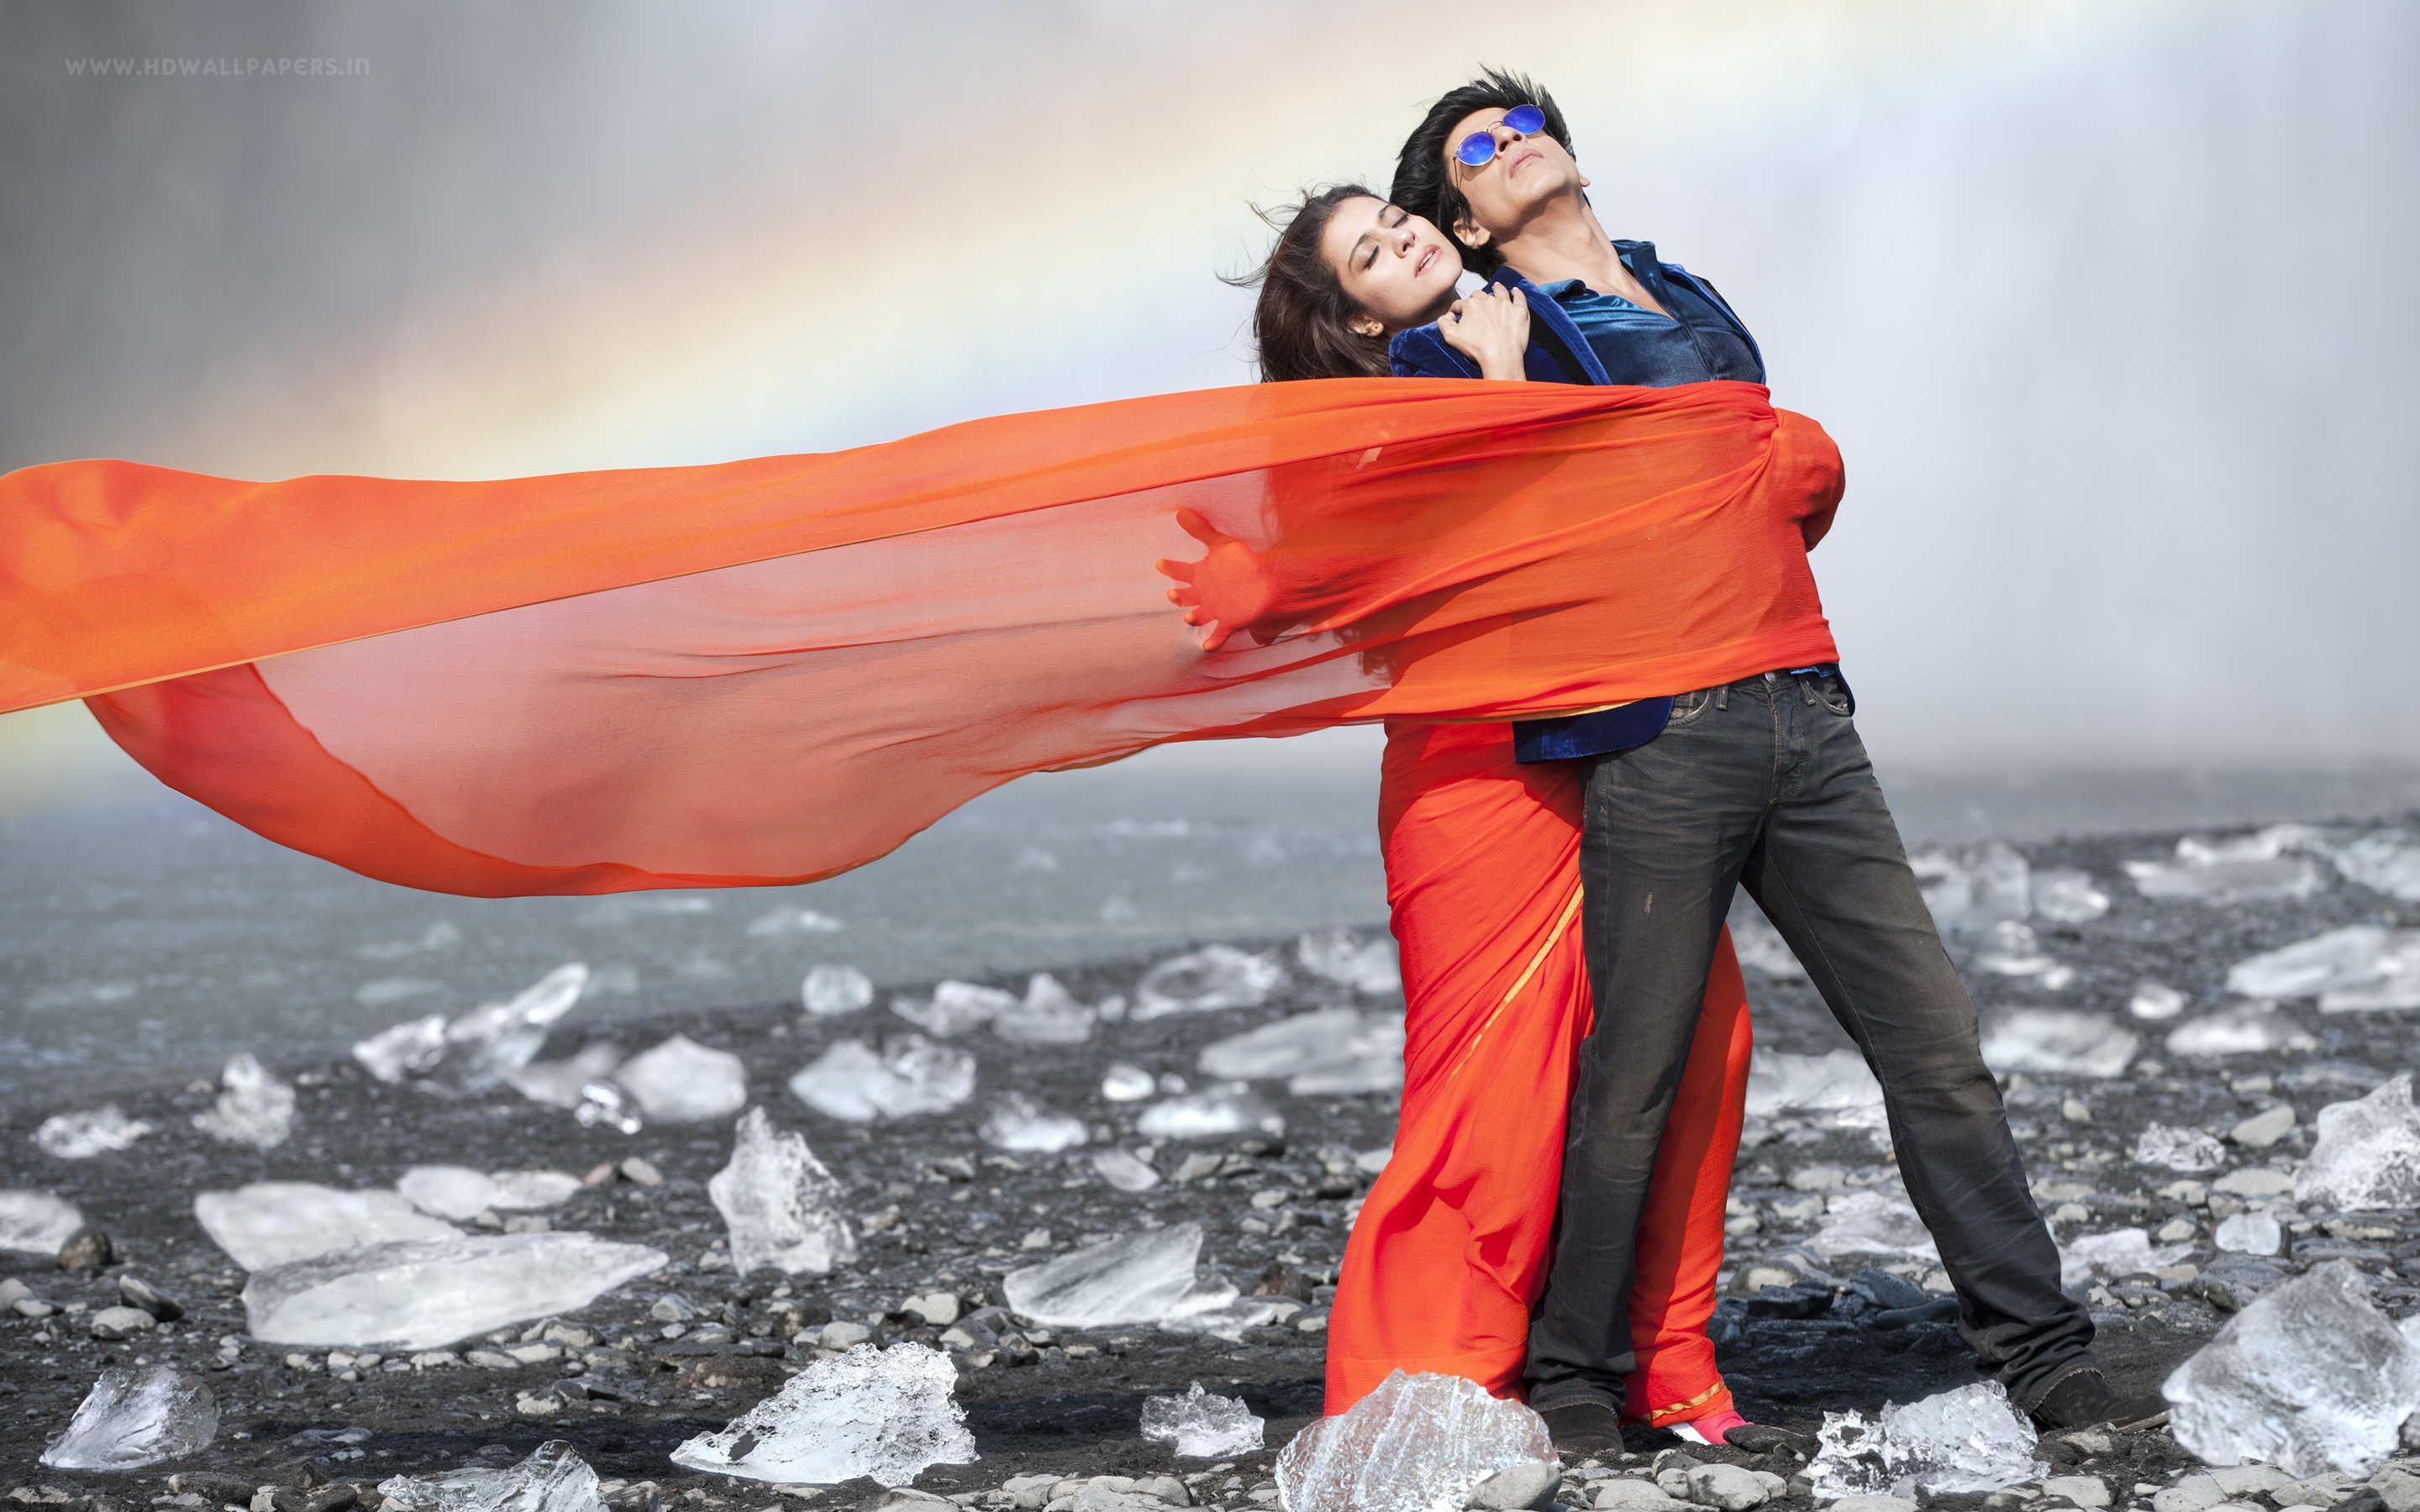 Shahrukh khan kajol hit songs free download pics with karan jhohar.